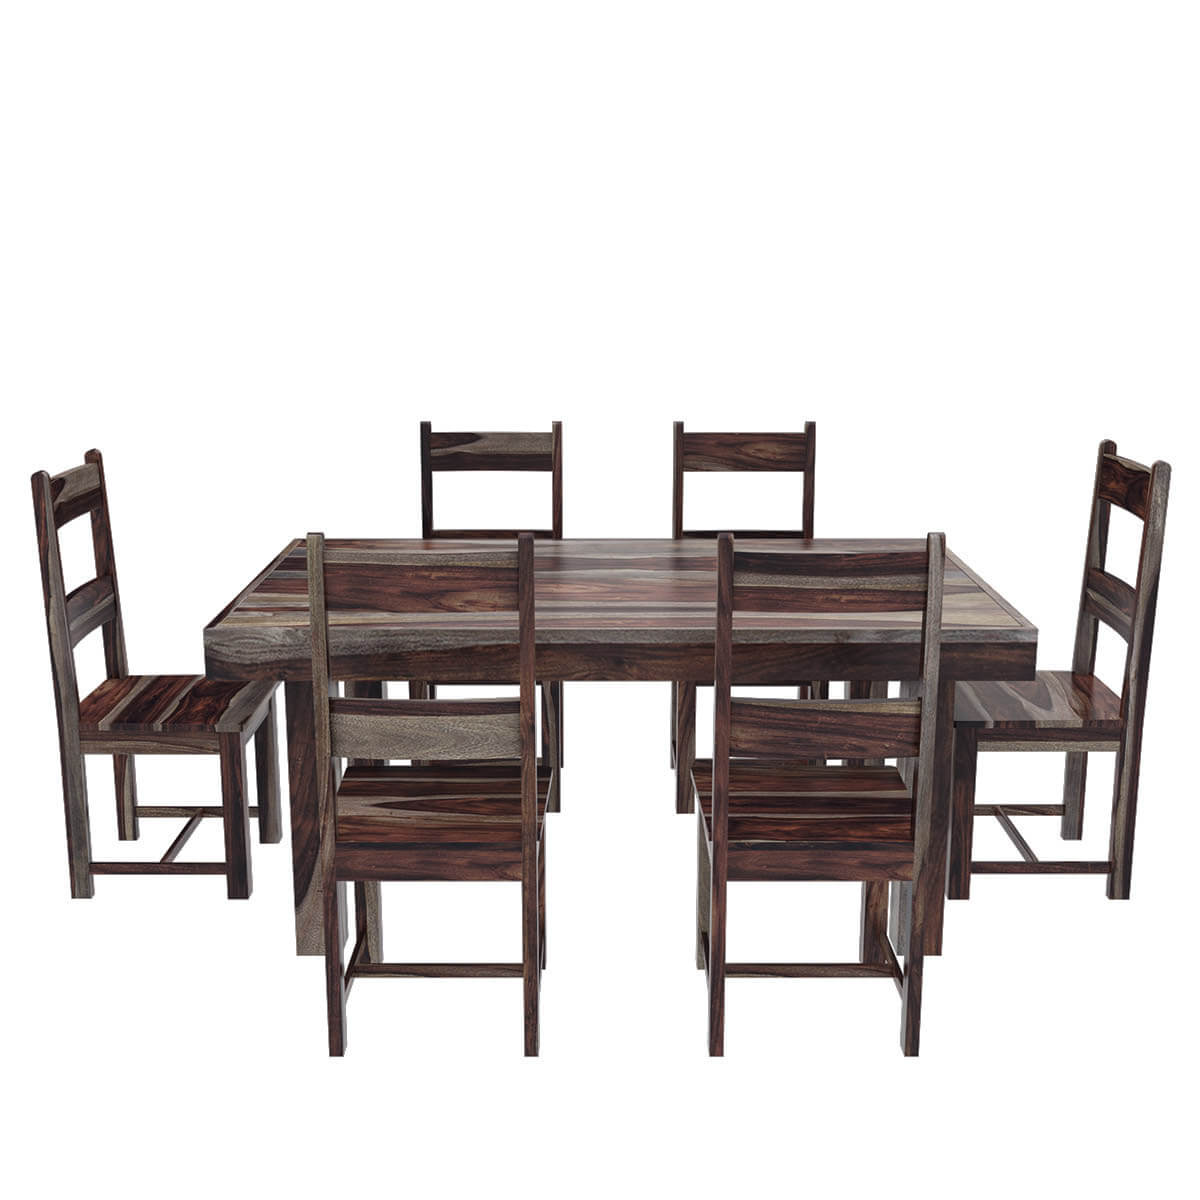 Dining Room Sets Wood: Frisco Modern Handcrafted Solid Wood 8 Piece Dining Room Set